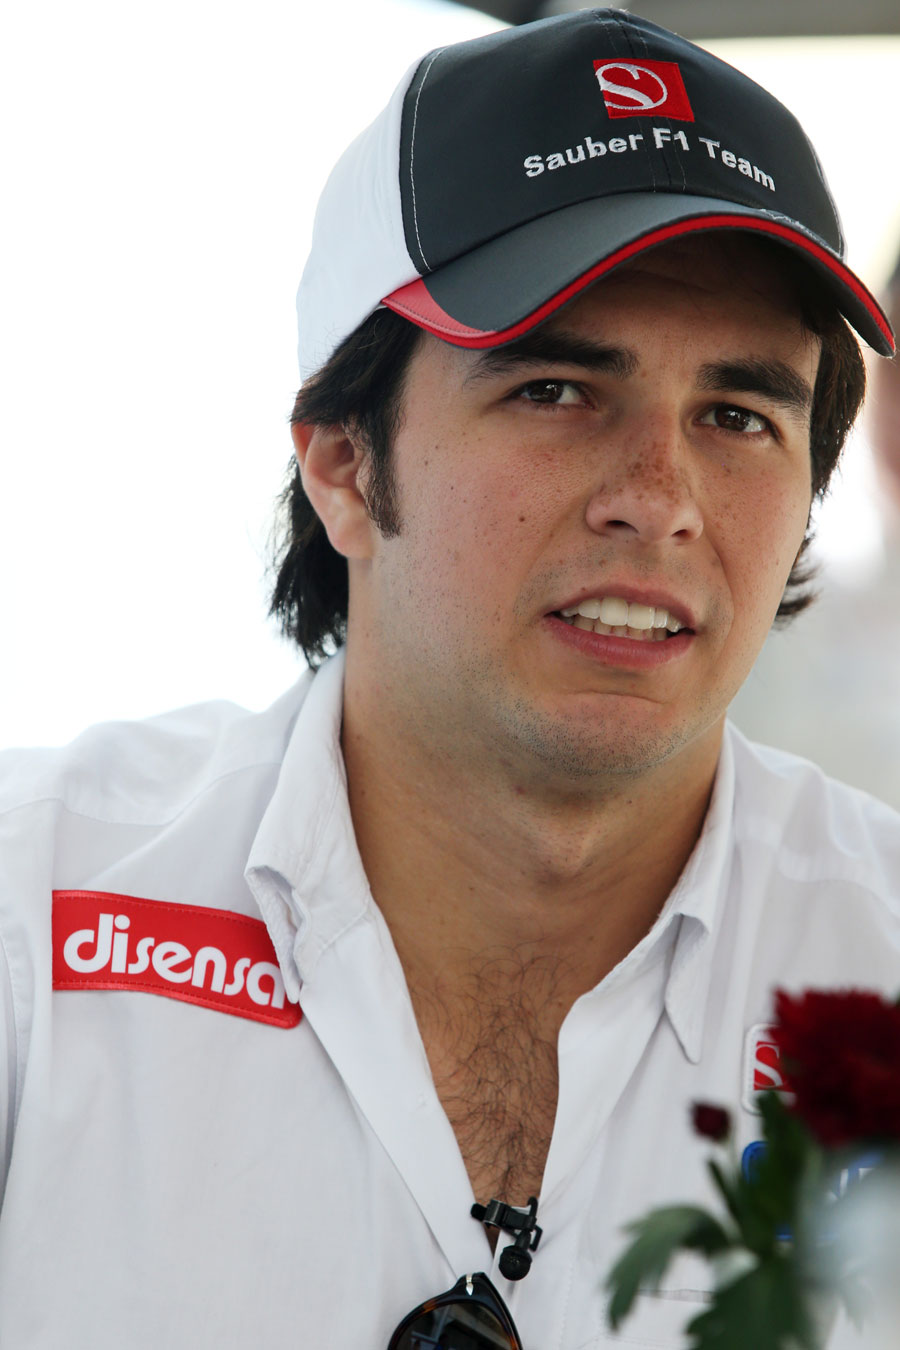 Sergio Perez faces questions from the press